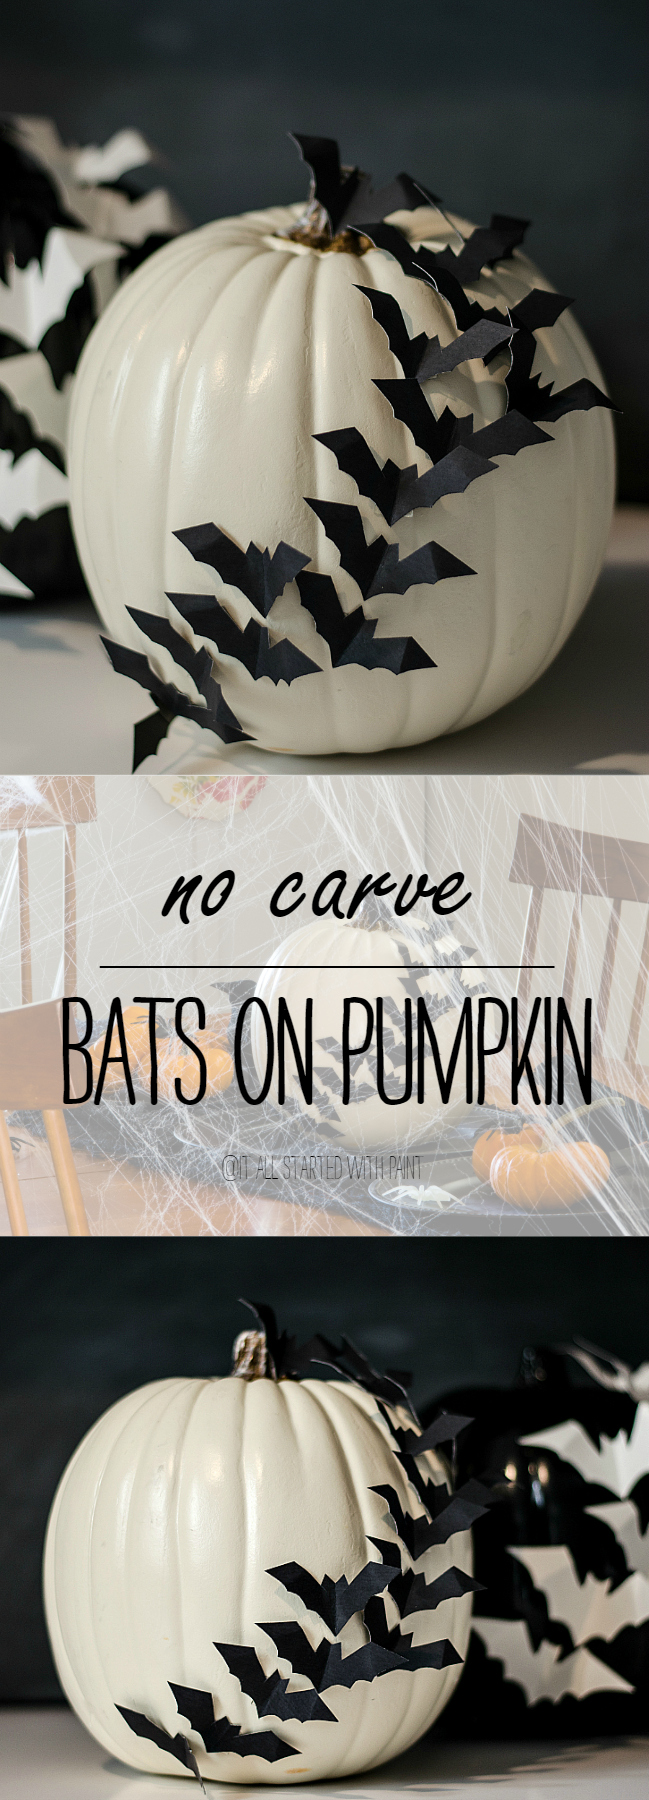 Pumpkin Ideas: Bats Flying Across Pumpkin No Carve Pumpkin Idea